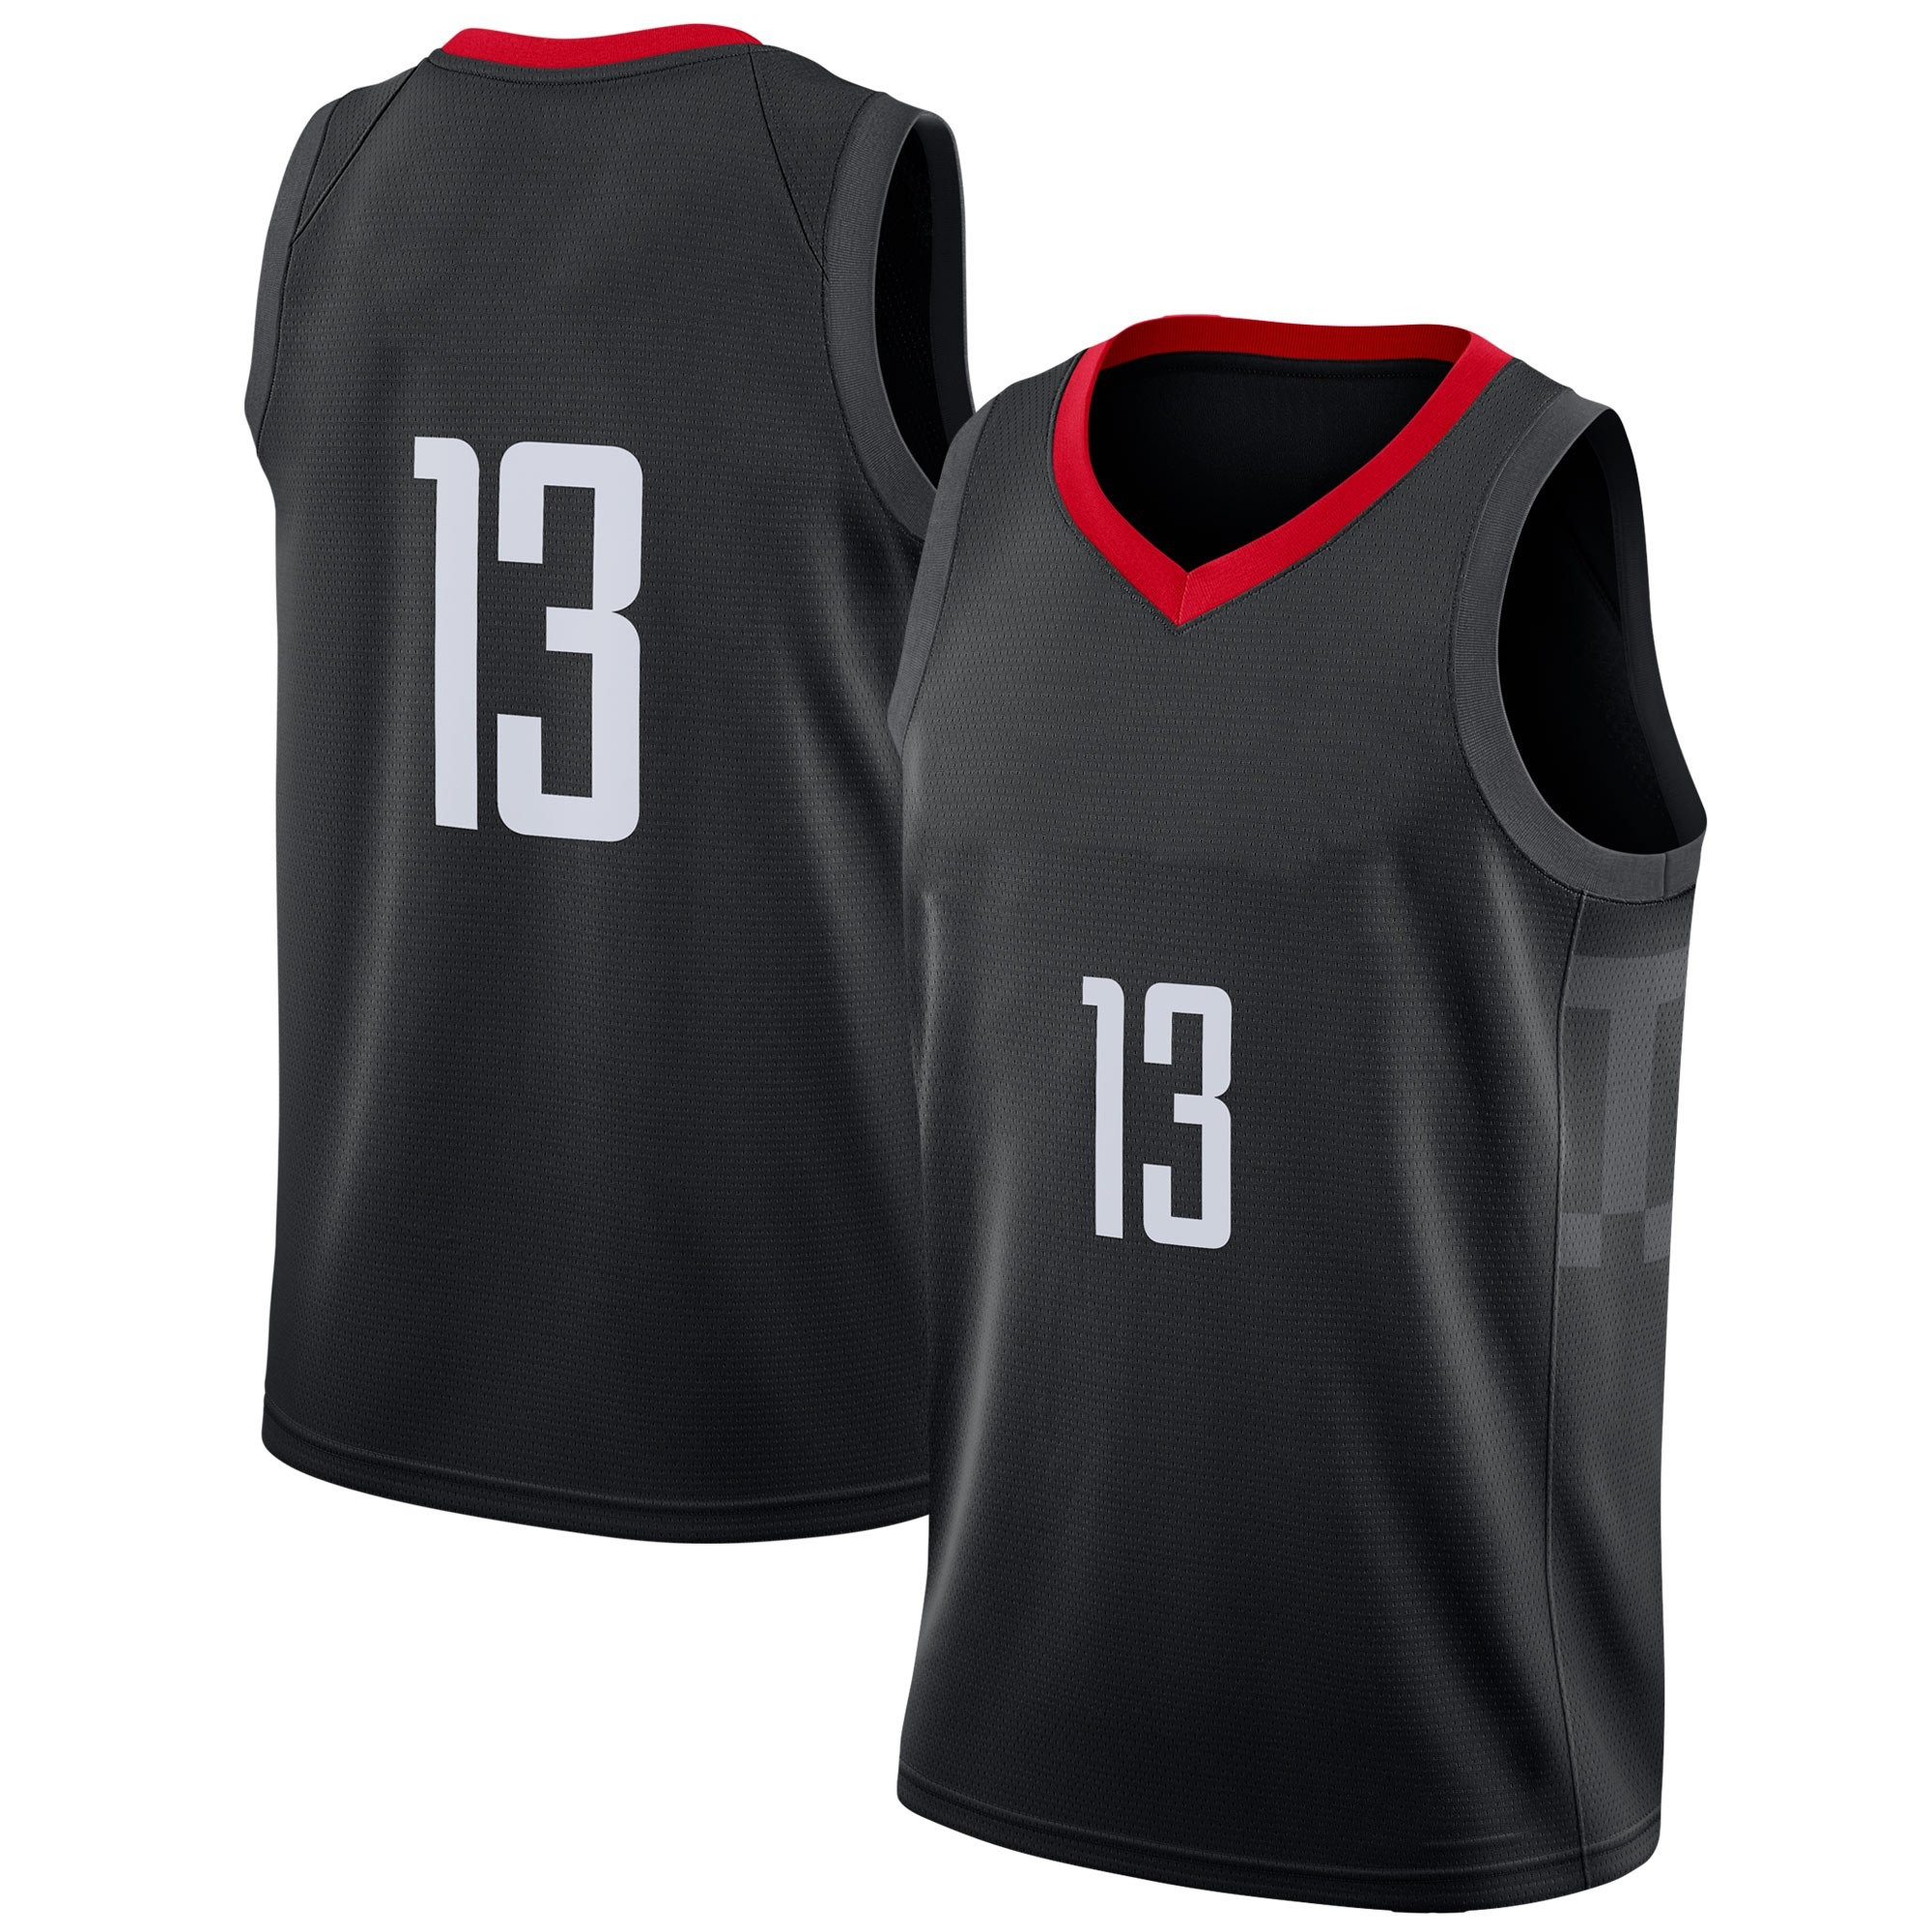 375f1beb862 Custom Best Cheap Usa Youth Basketball Jersey - Buy Custom Logo ...